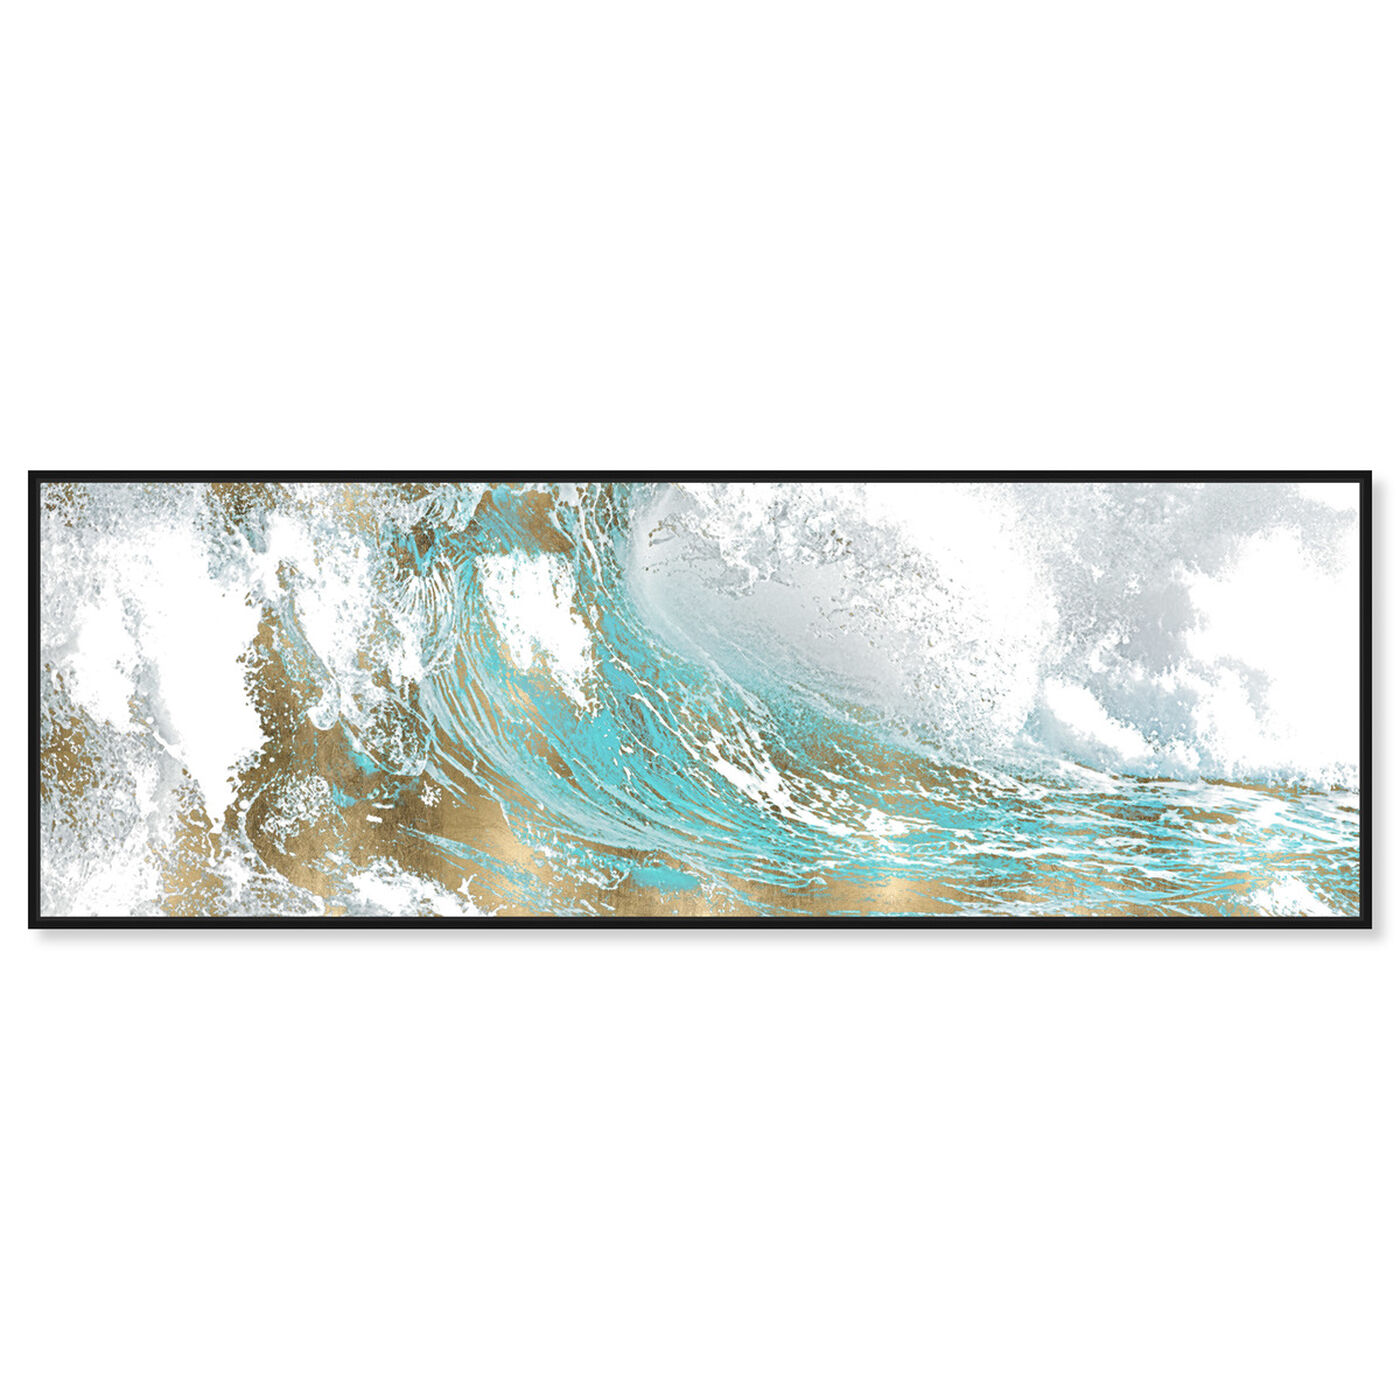 Front view of Wave in a Moment Aqua featuring abstract and paint art.